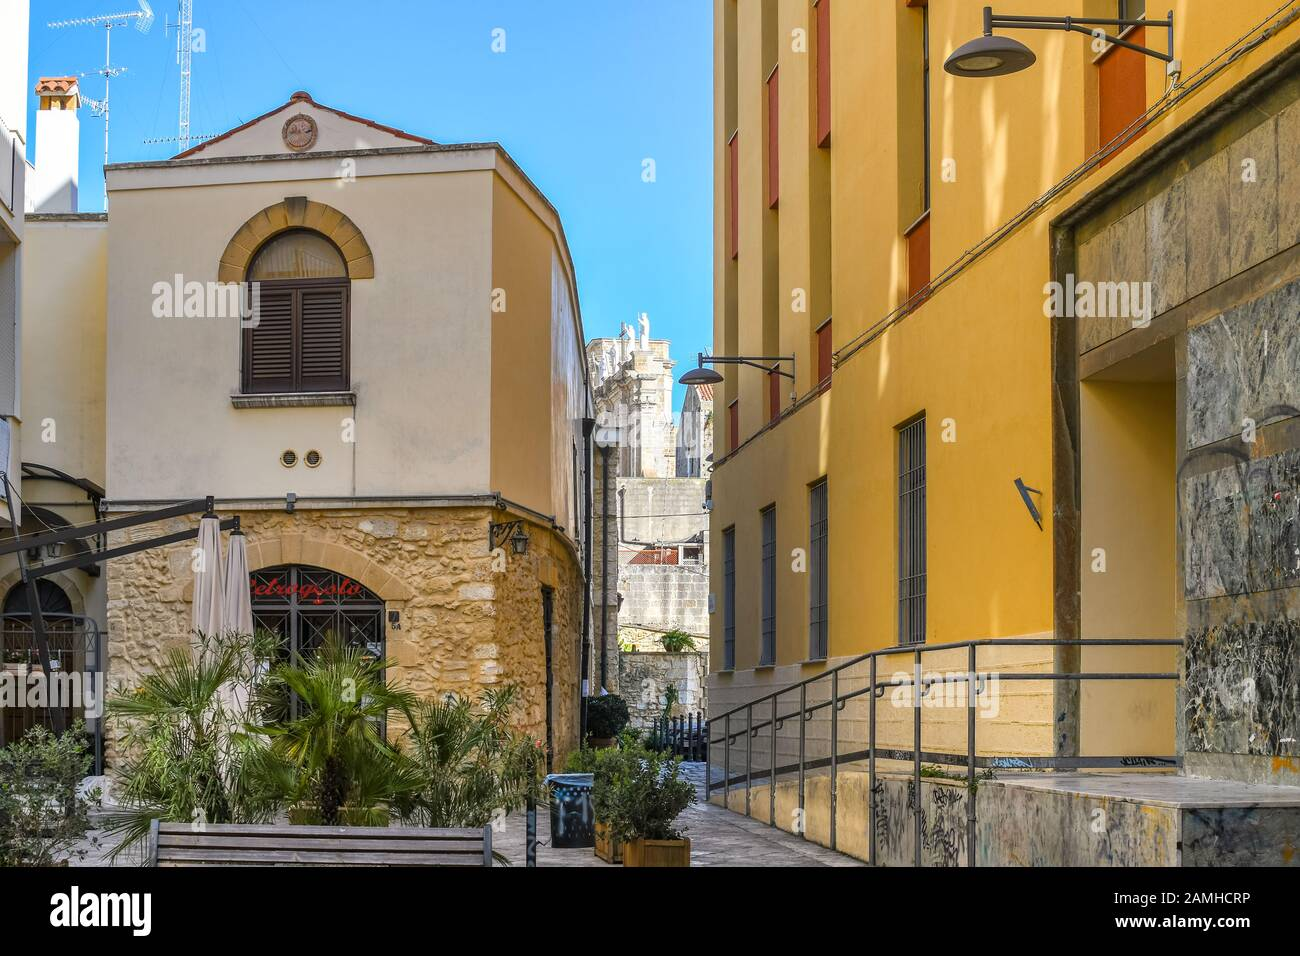 A small courtyard in the tourist center of Brindisi Italy with the Brindisi Cathedral Duomo statues visible behind on a sunny day in the Puglia Region. Stock Photo